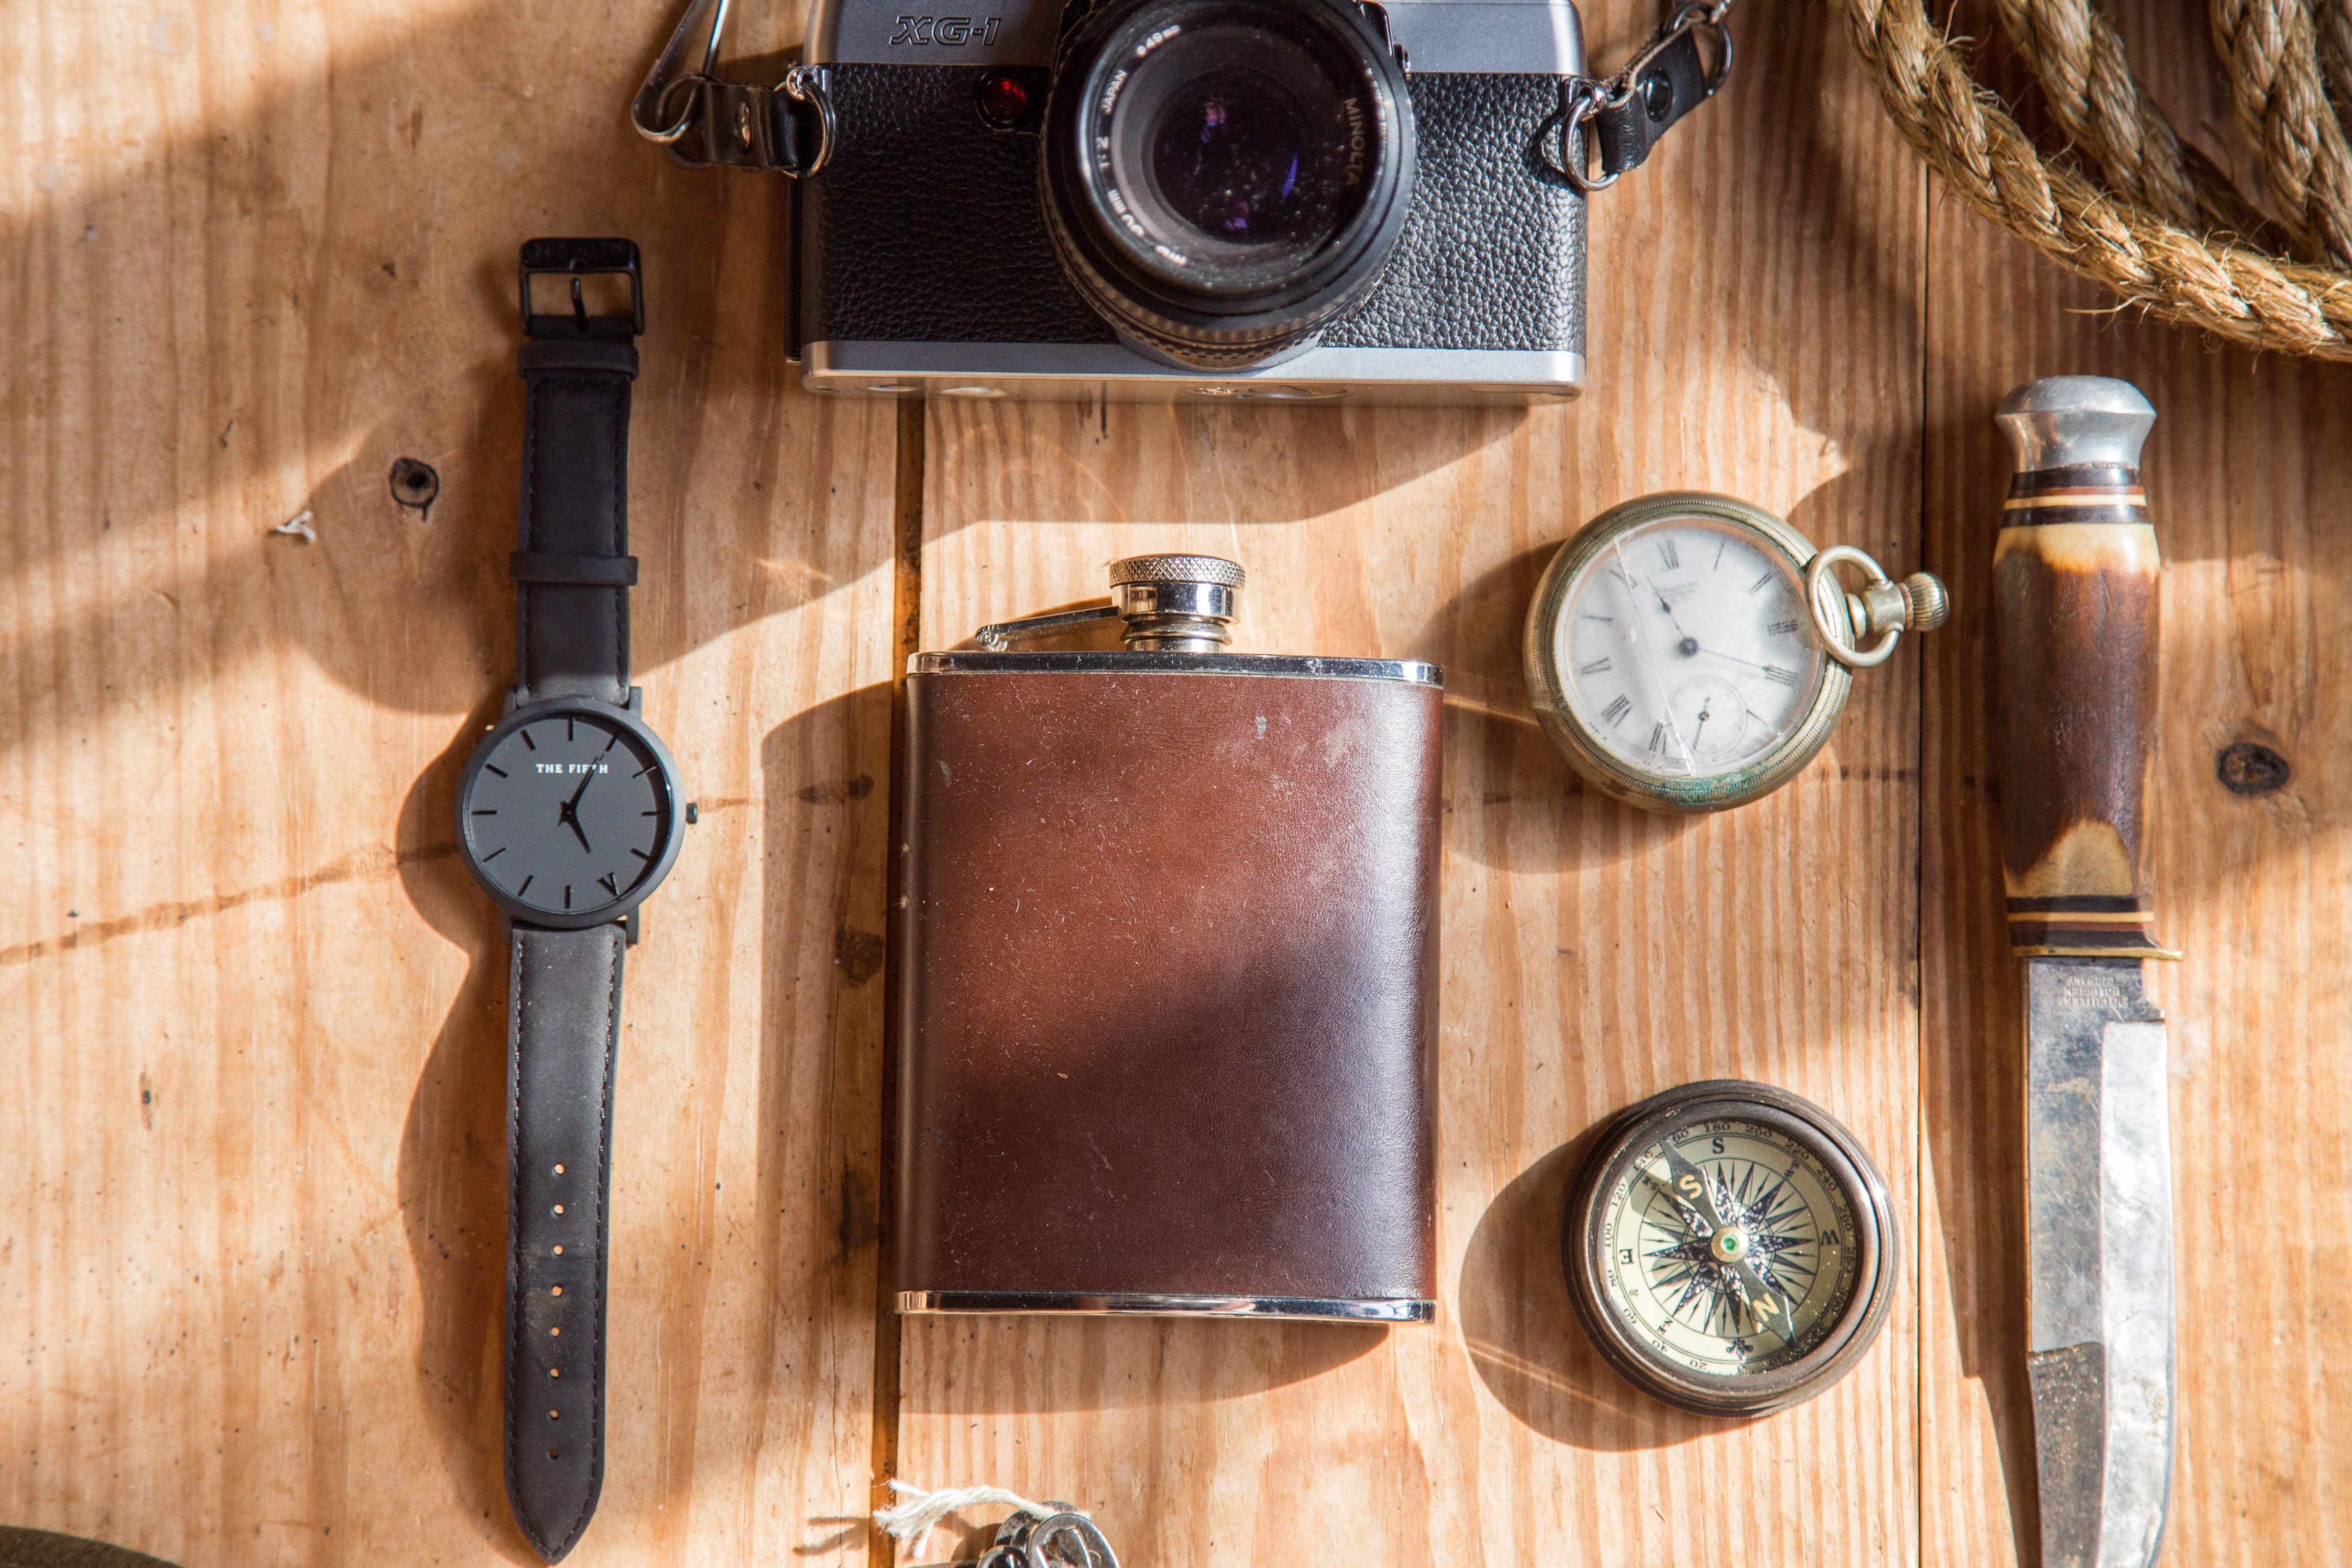 Brown wine flask near lomo camera watch knife and pocket watches on able photo